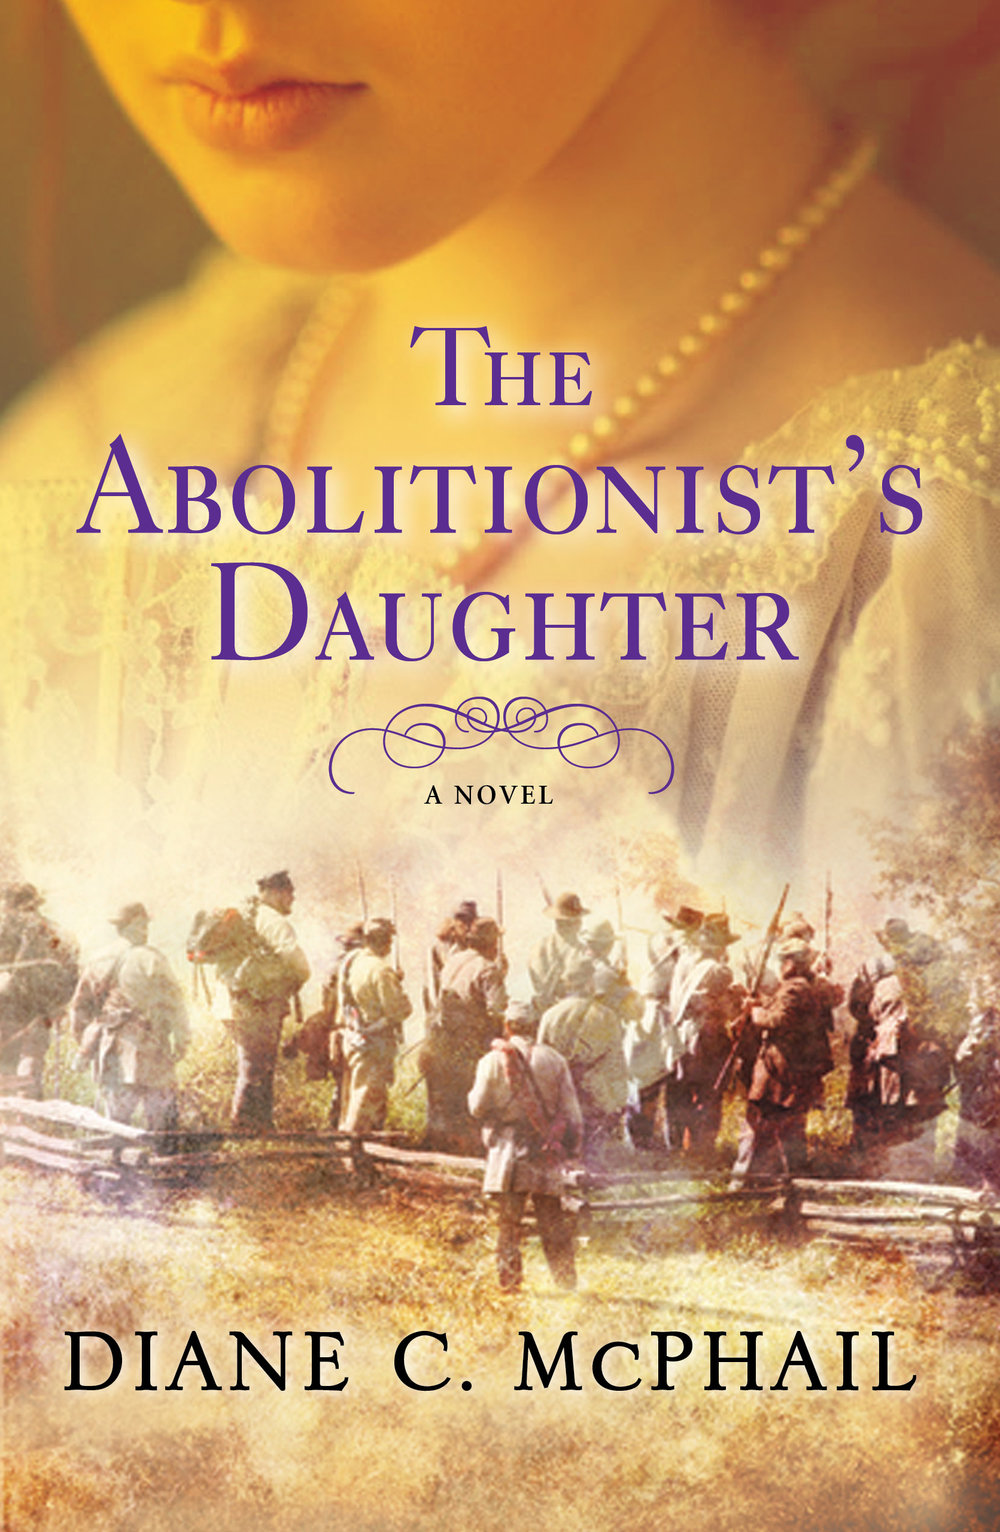 The Abolitionist's Daughter. by Diane C. McPhail